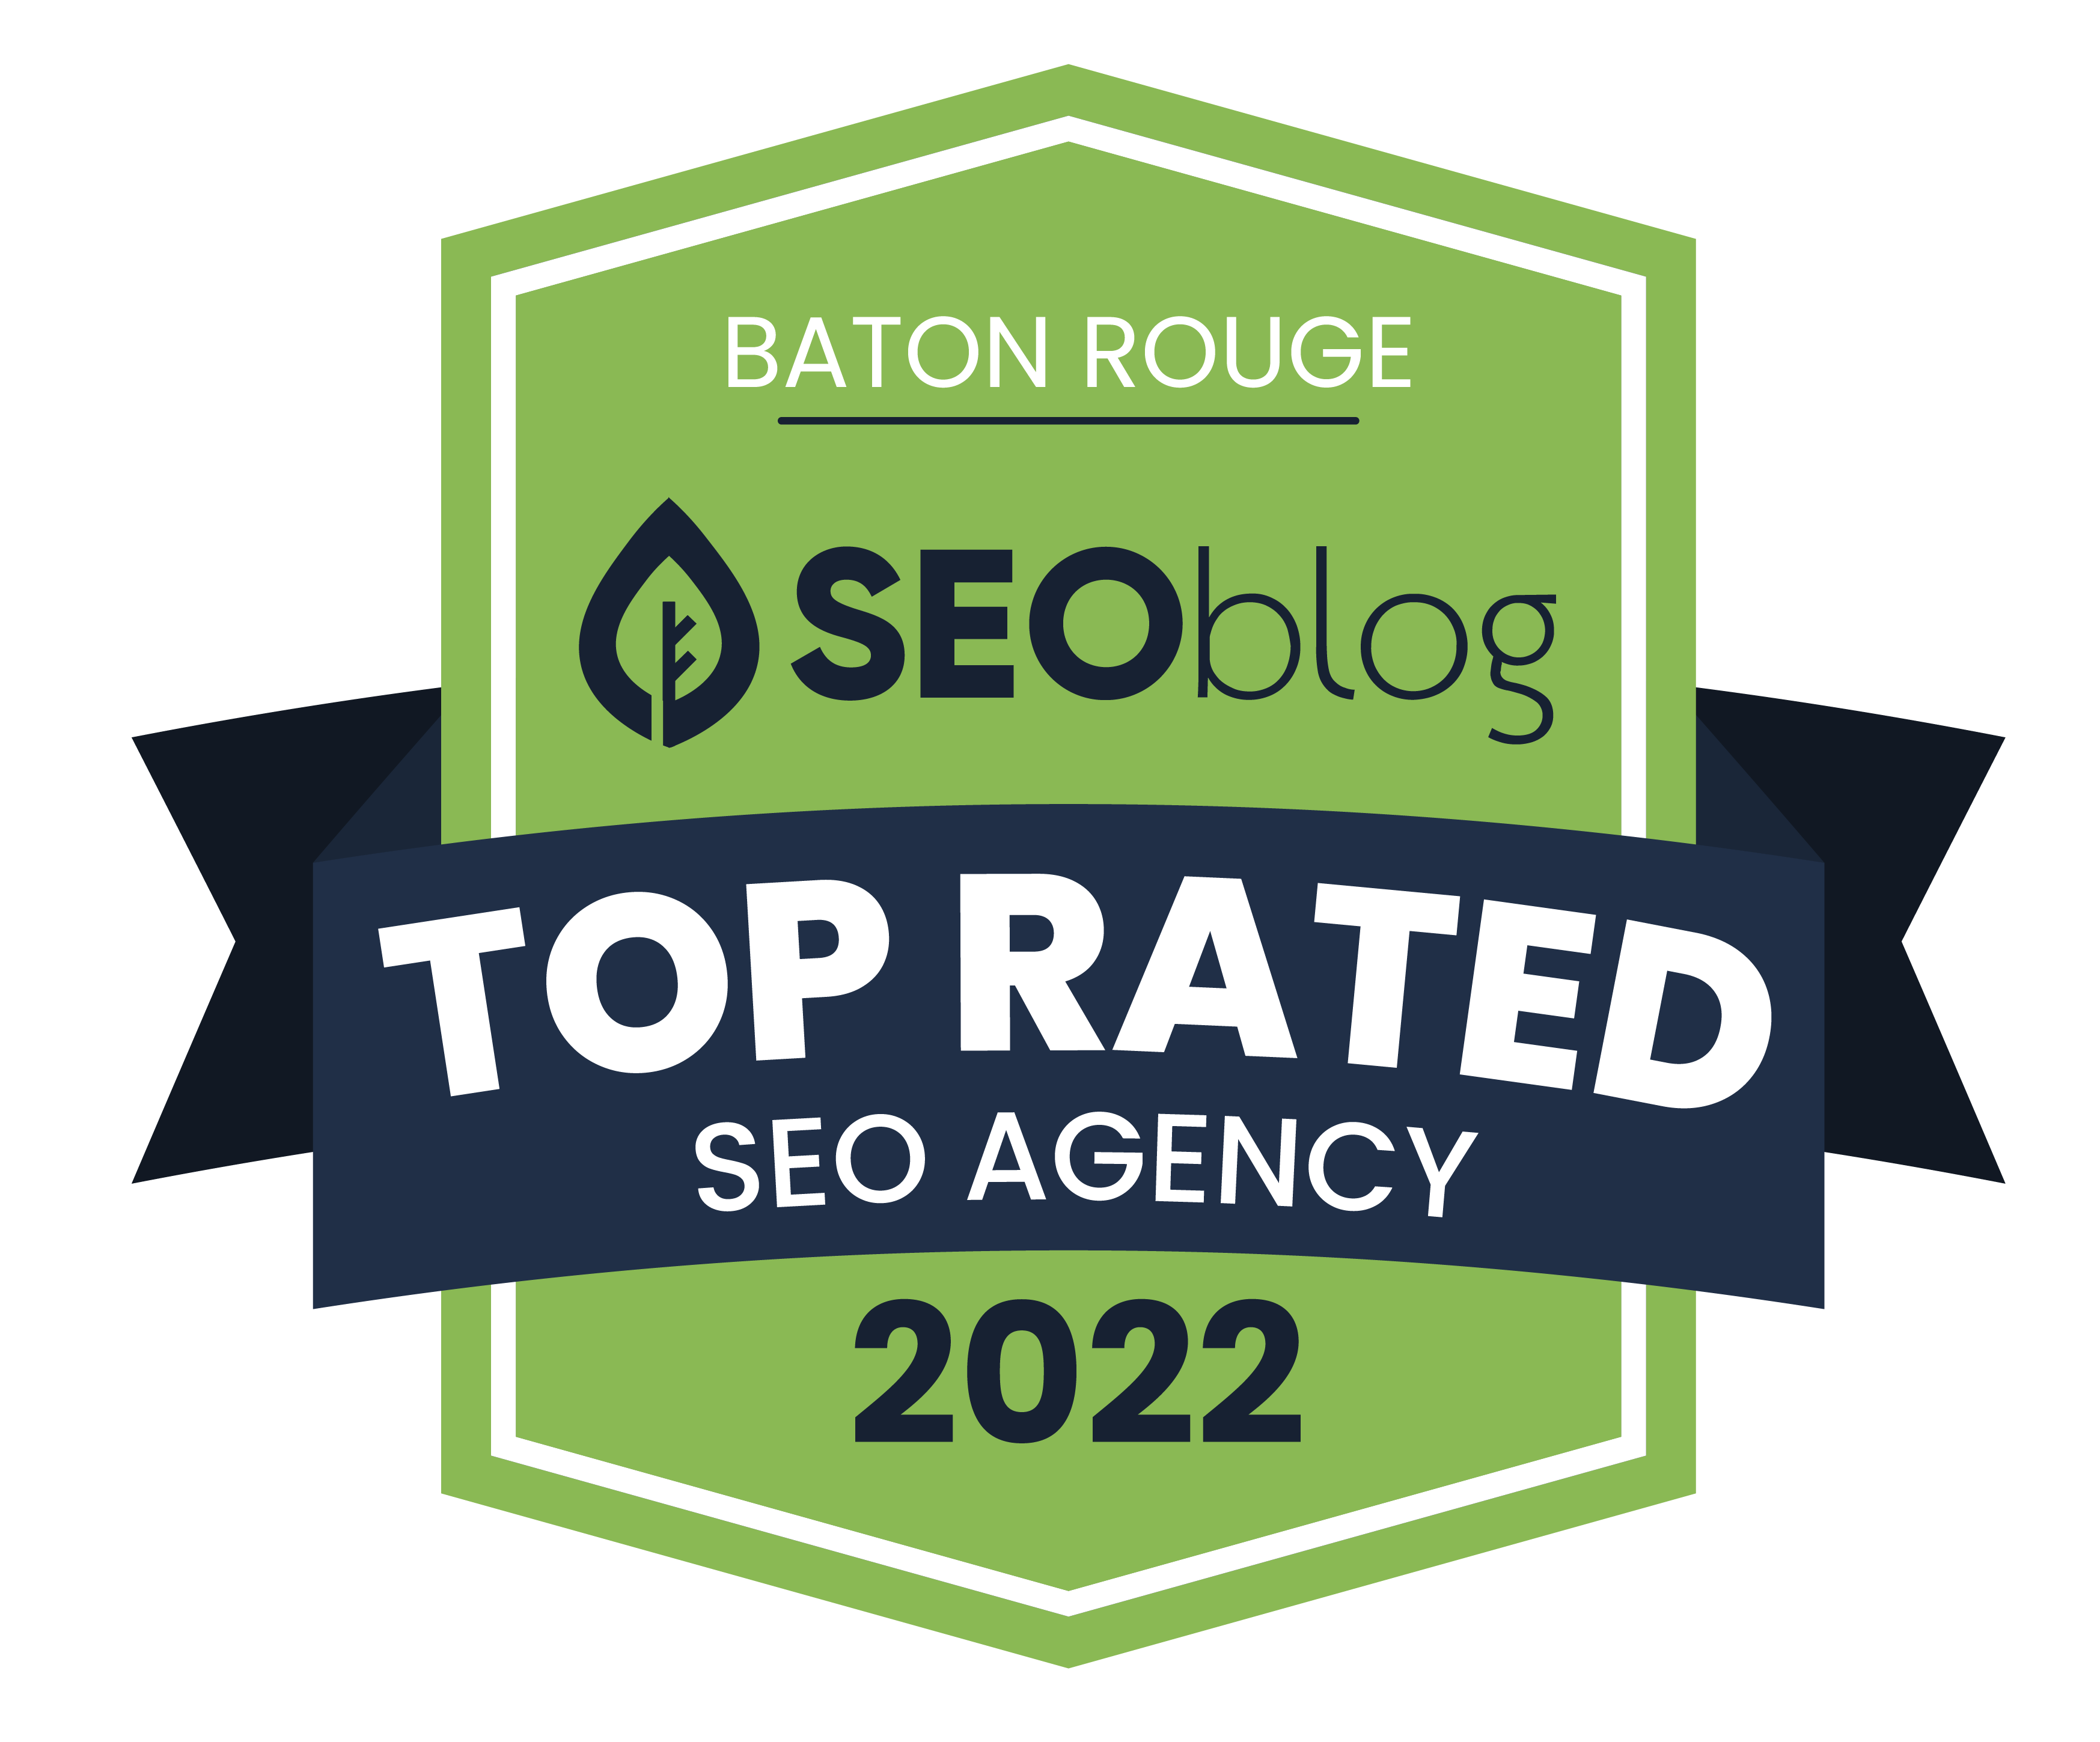 Baton Rouge SEO Agency